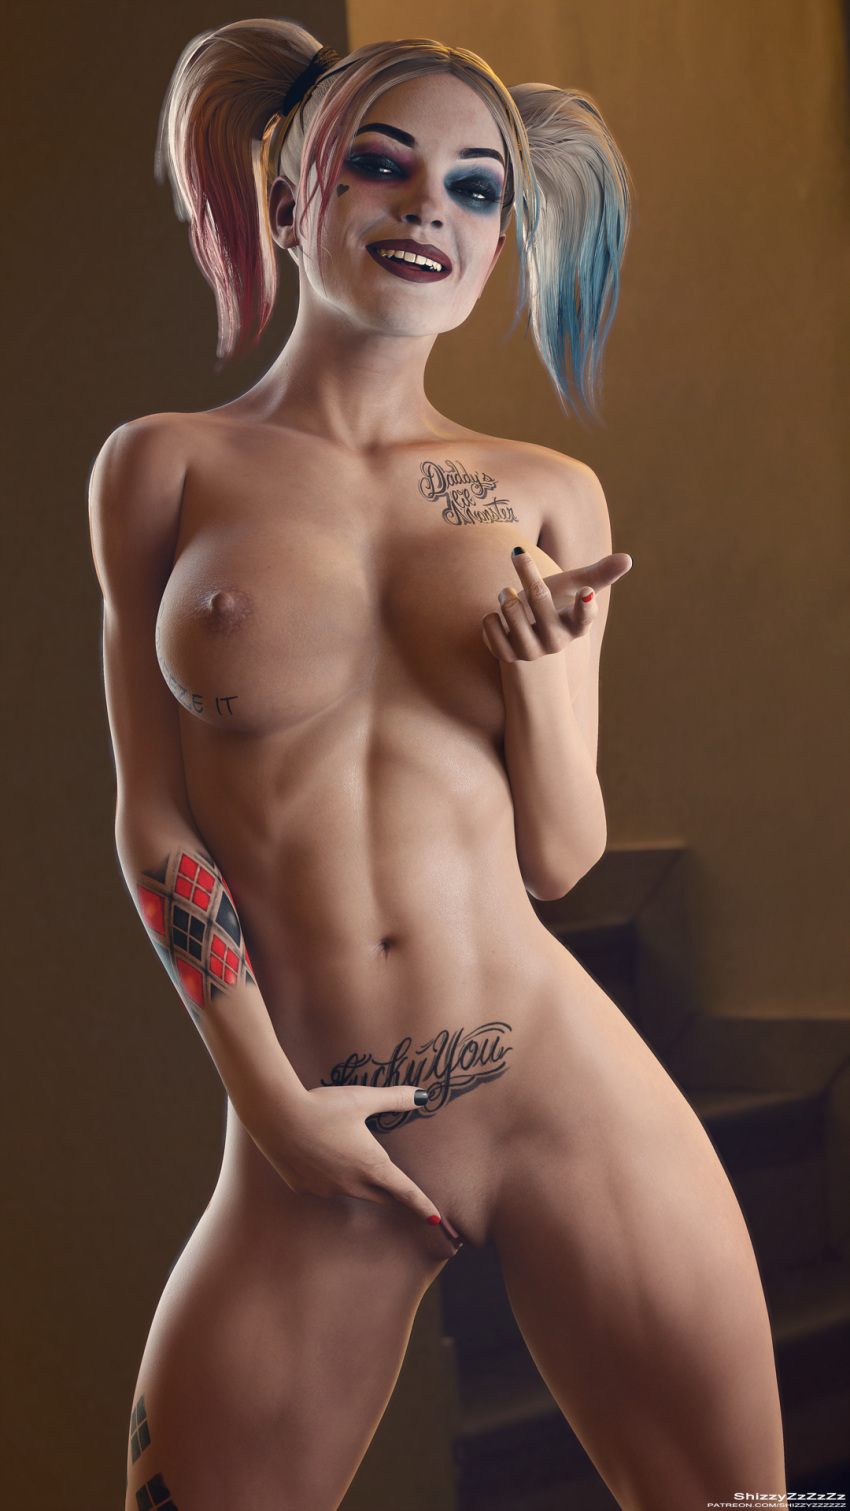 Hot Harley Quinn Nude Mod Pic